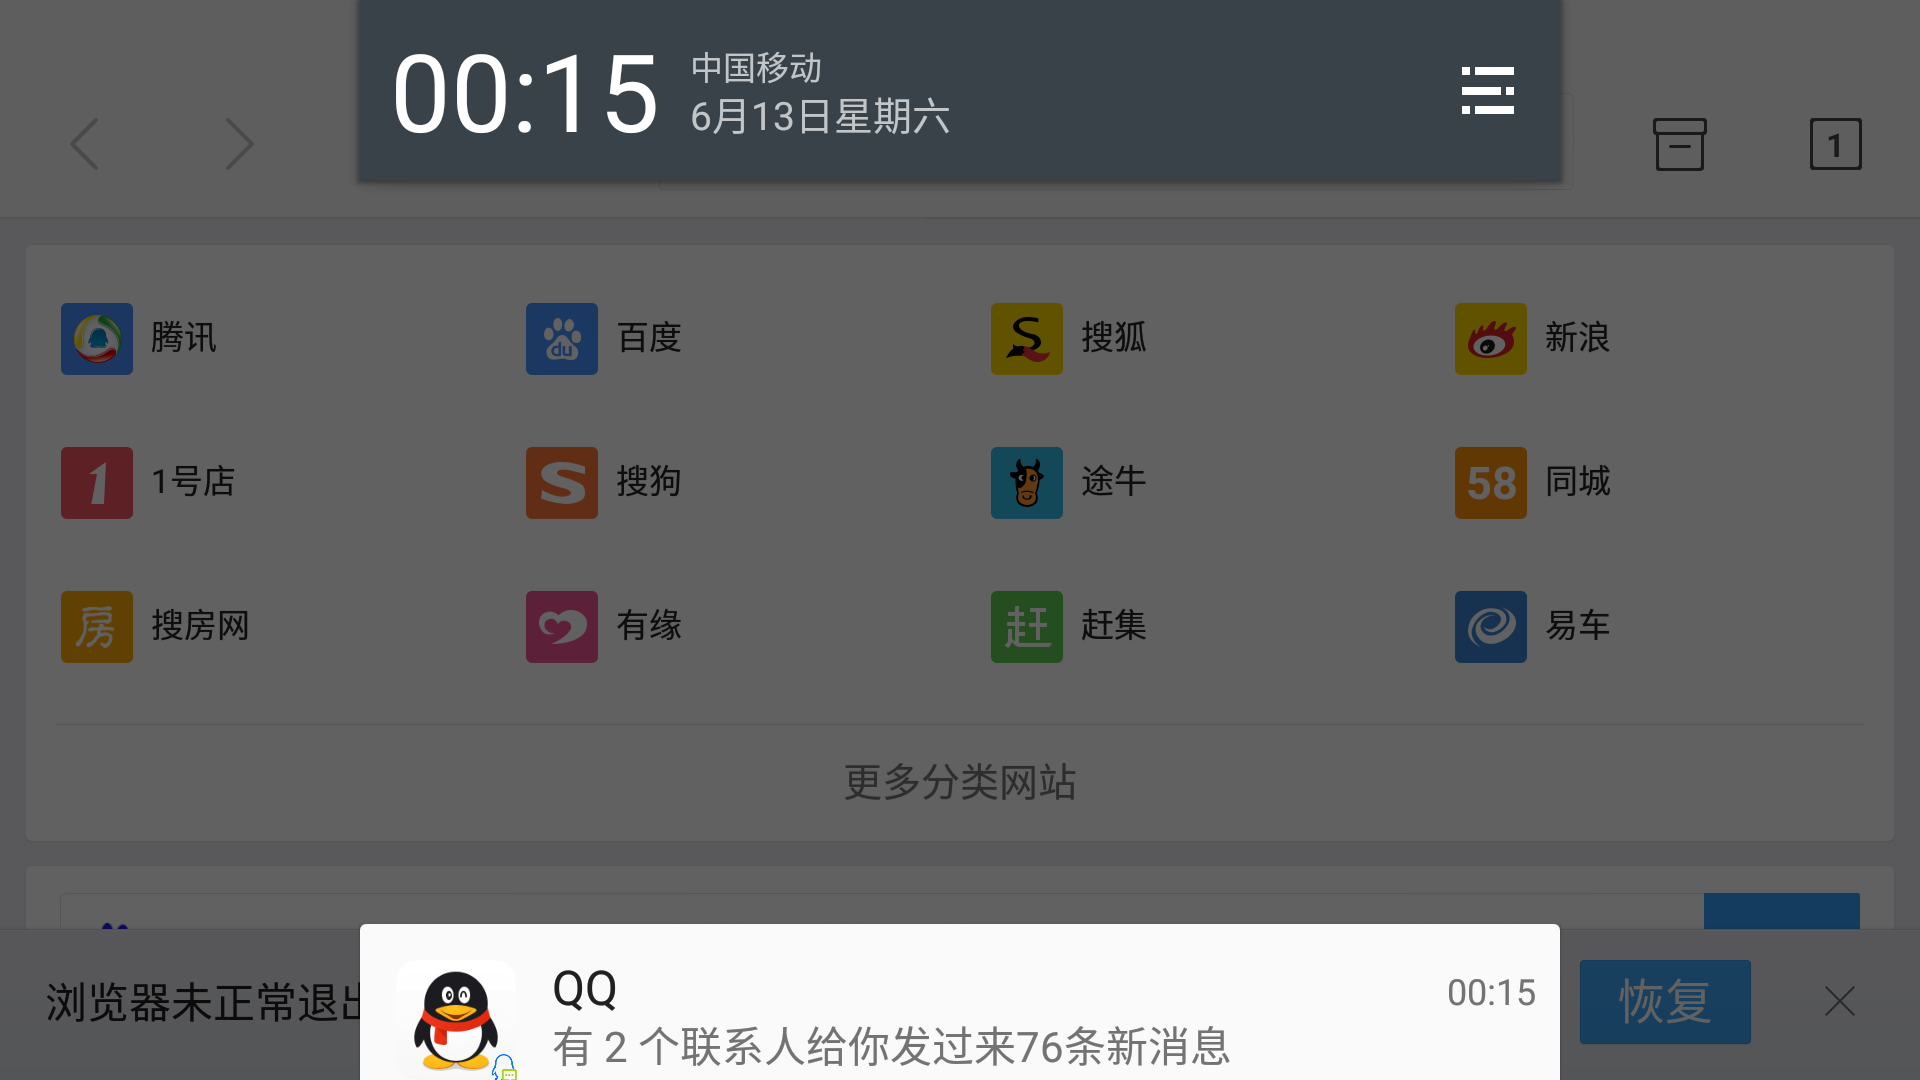 Screenshot_2015-06-13-00-15-41.png